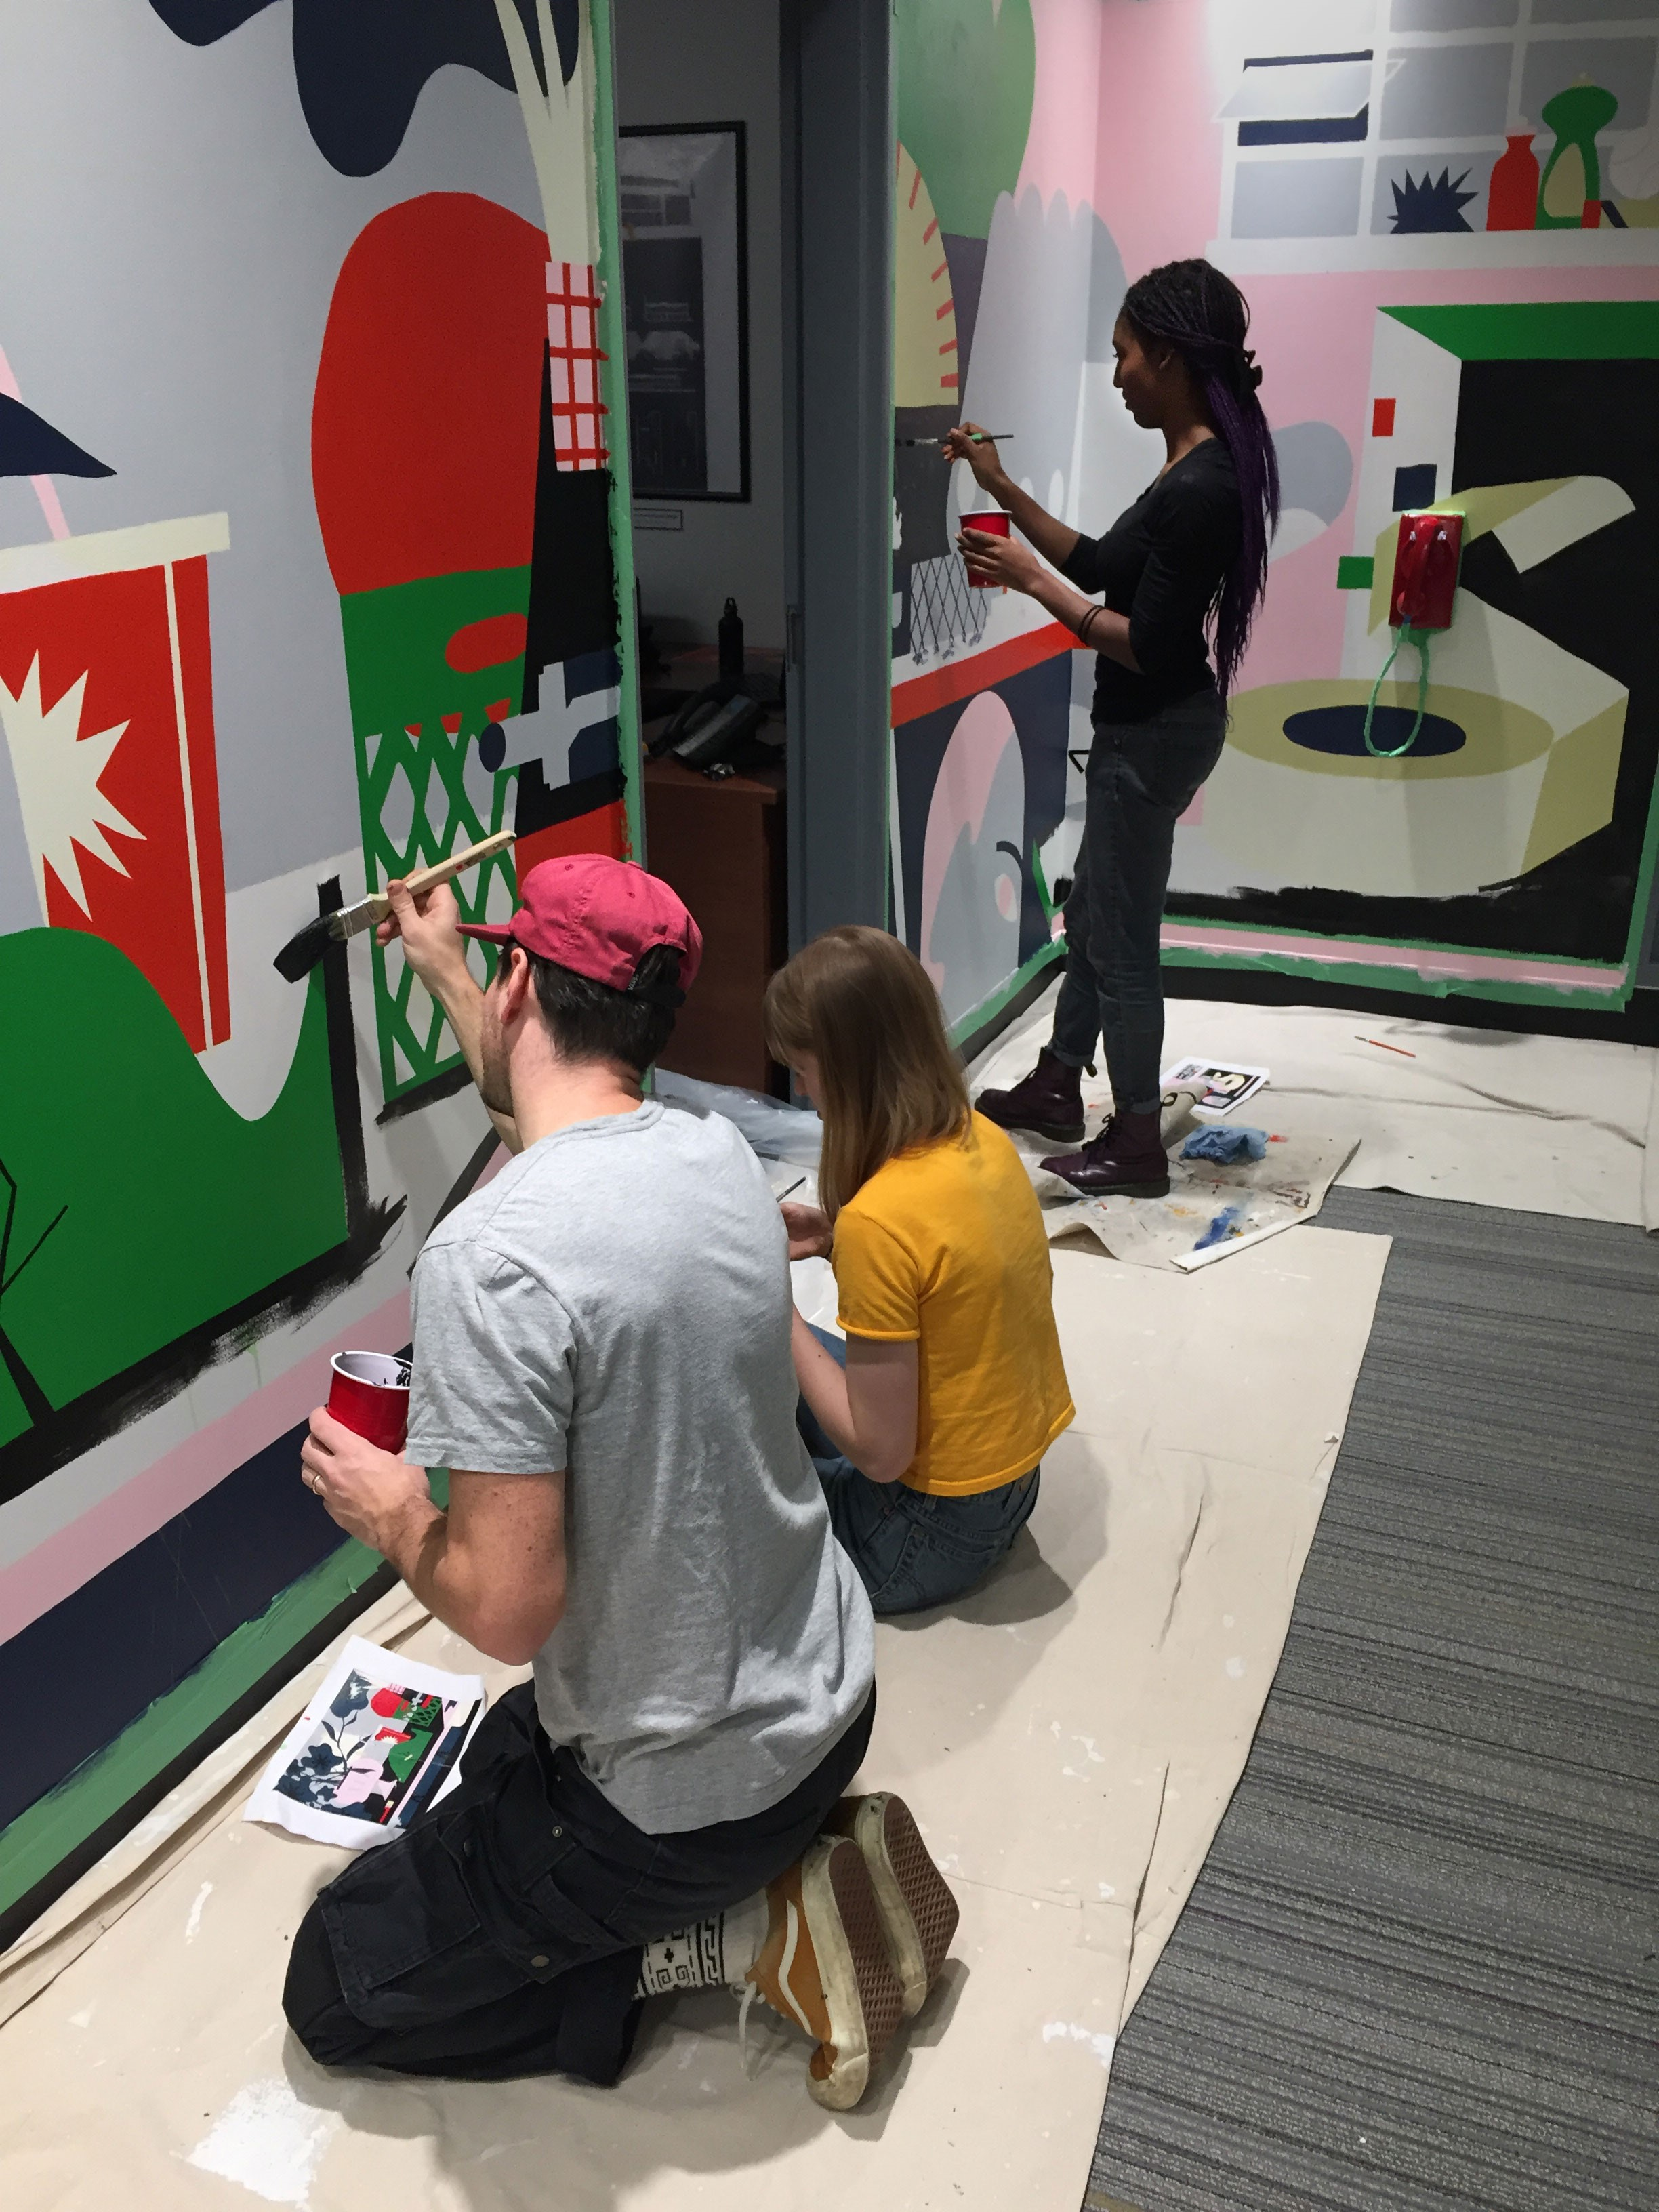 Three people painting the mural